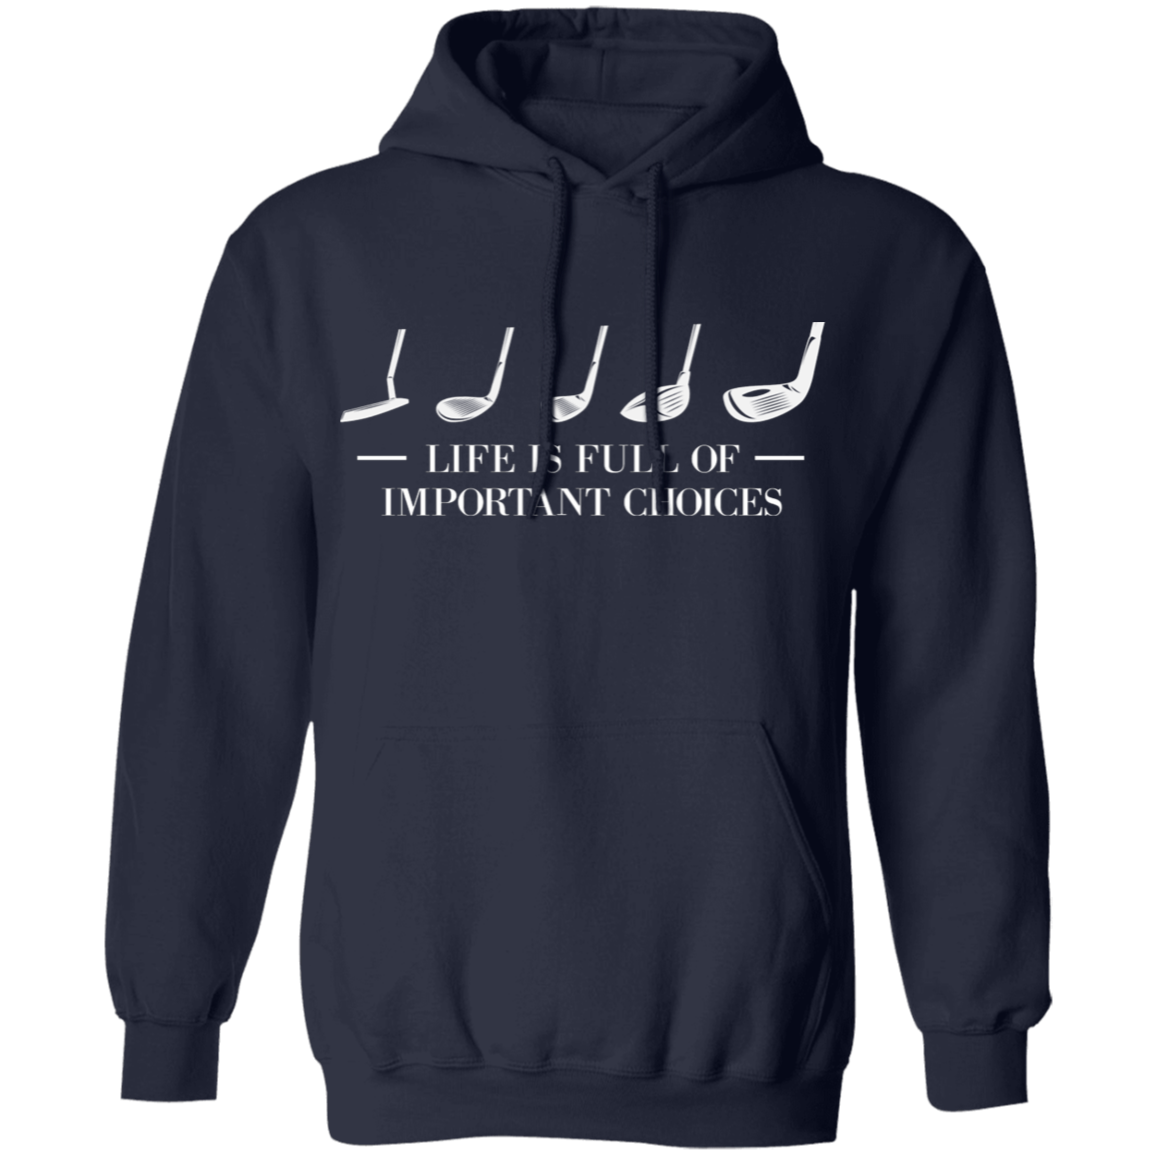 Save an Extra 10% on Hoodies Right Now